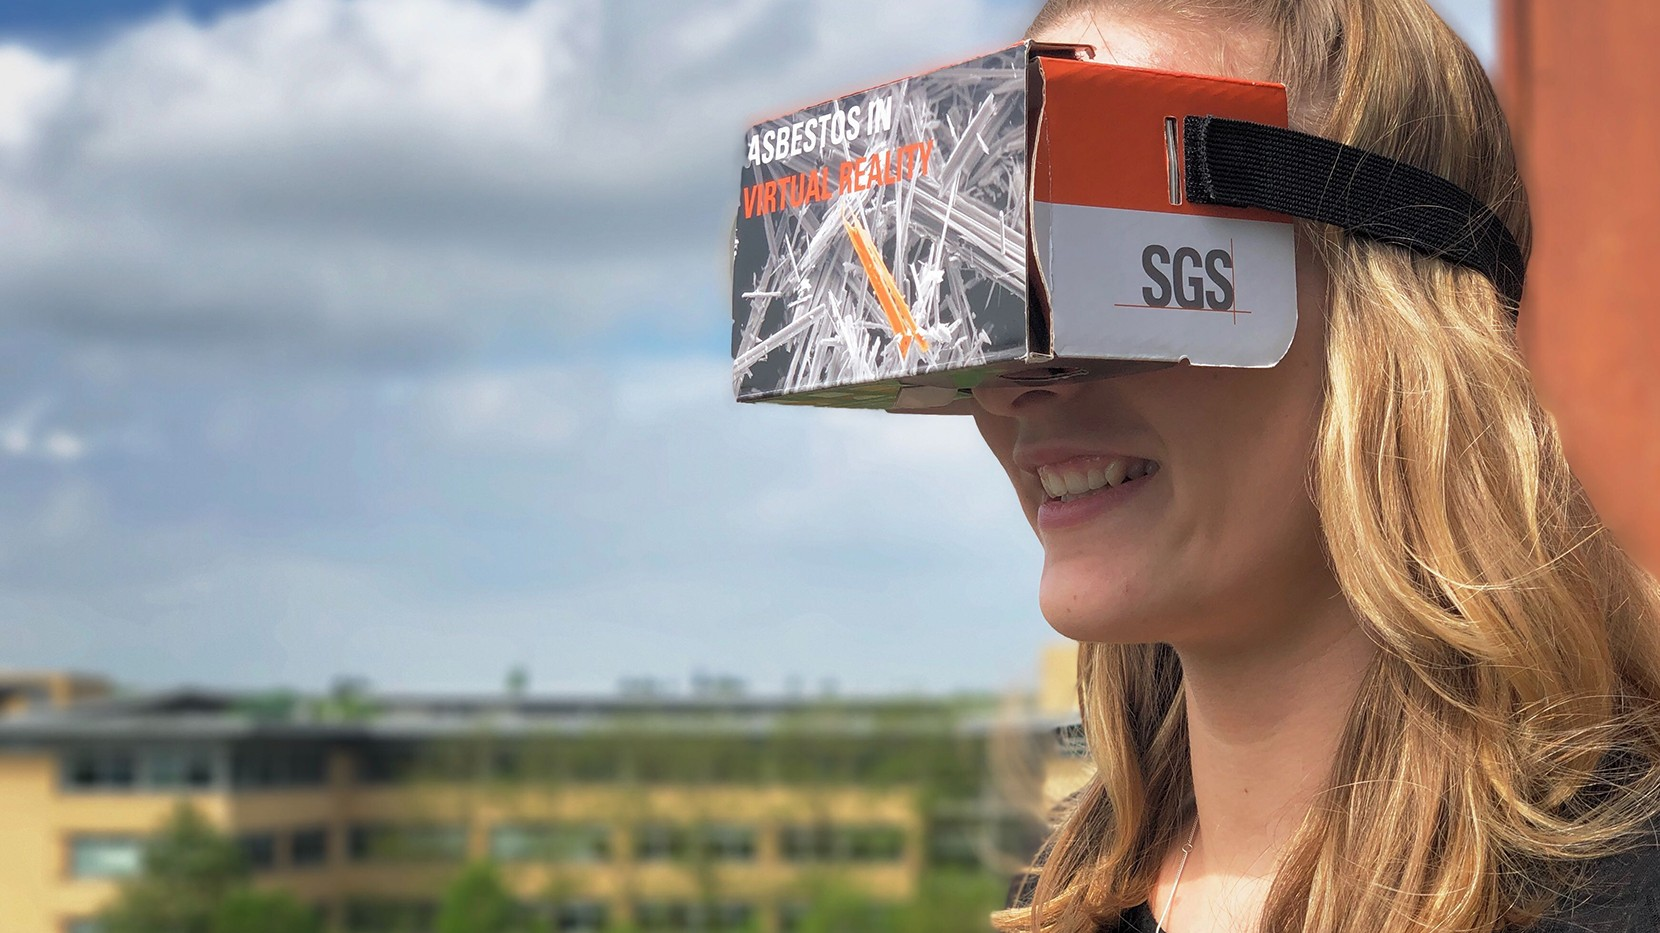 Recognising asbestos in virtual reality